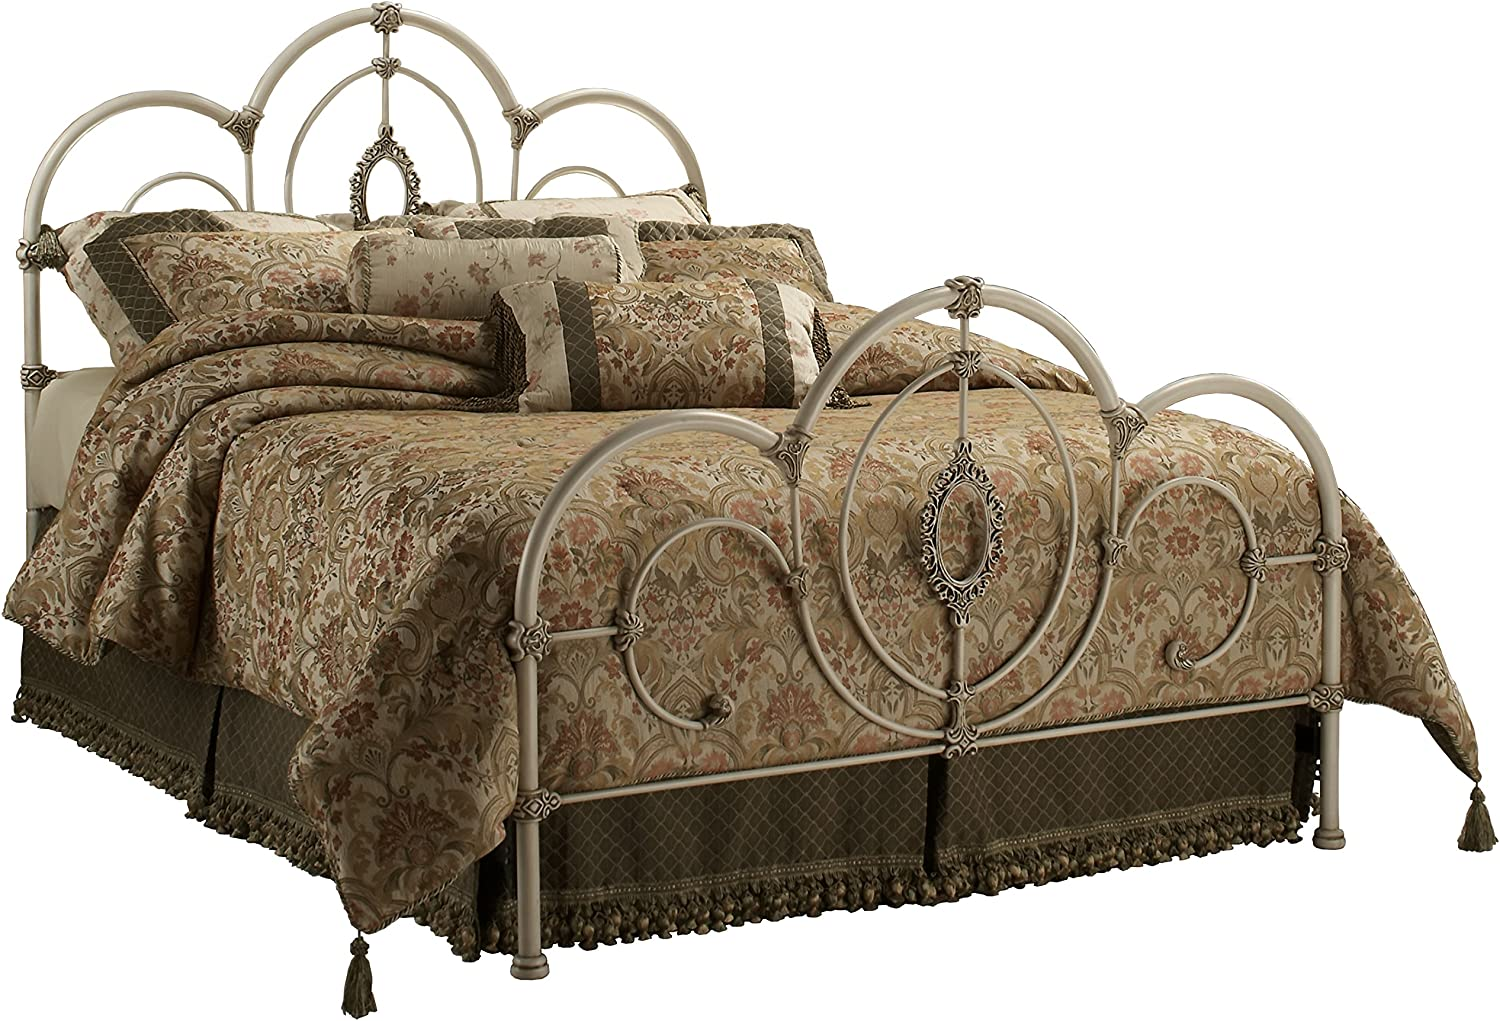 Hillsdale Furniture Victoria low-pricing Bed Set Rails with Antique W Full San Francisco Mall